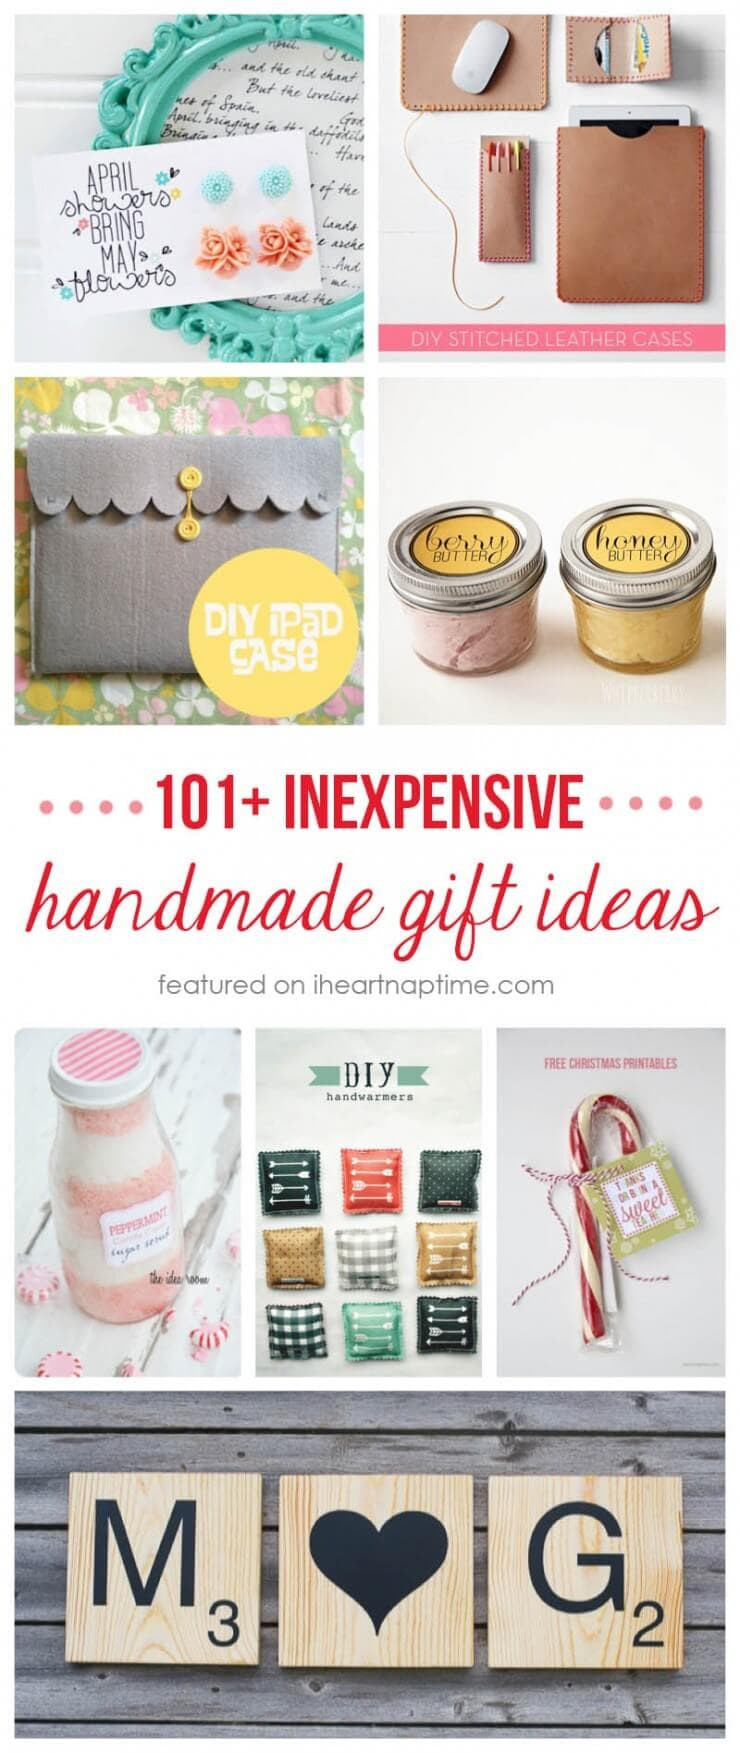 Best ideas about Cheap Holiday Gift Ideas . Save or Pin 50 homemade t ideas to make for under $5 I Heart Nap Time Now.